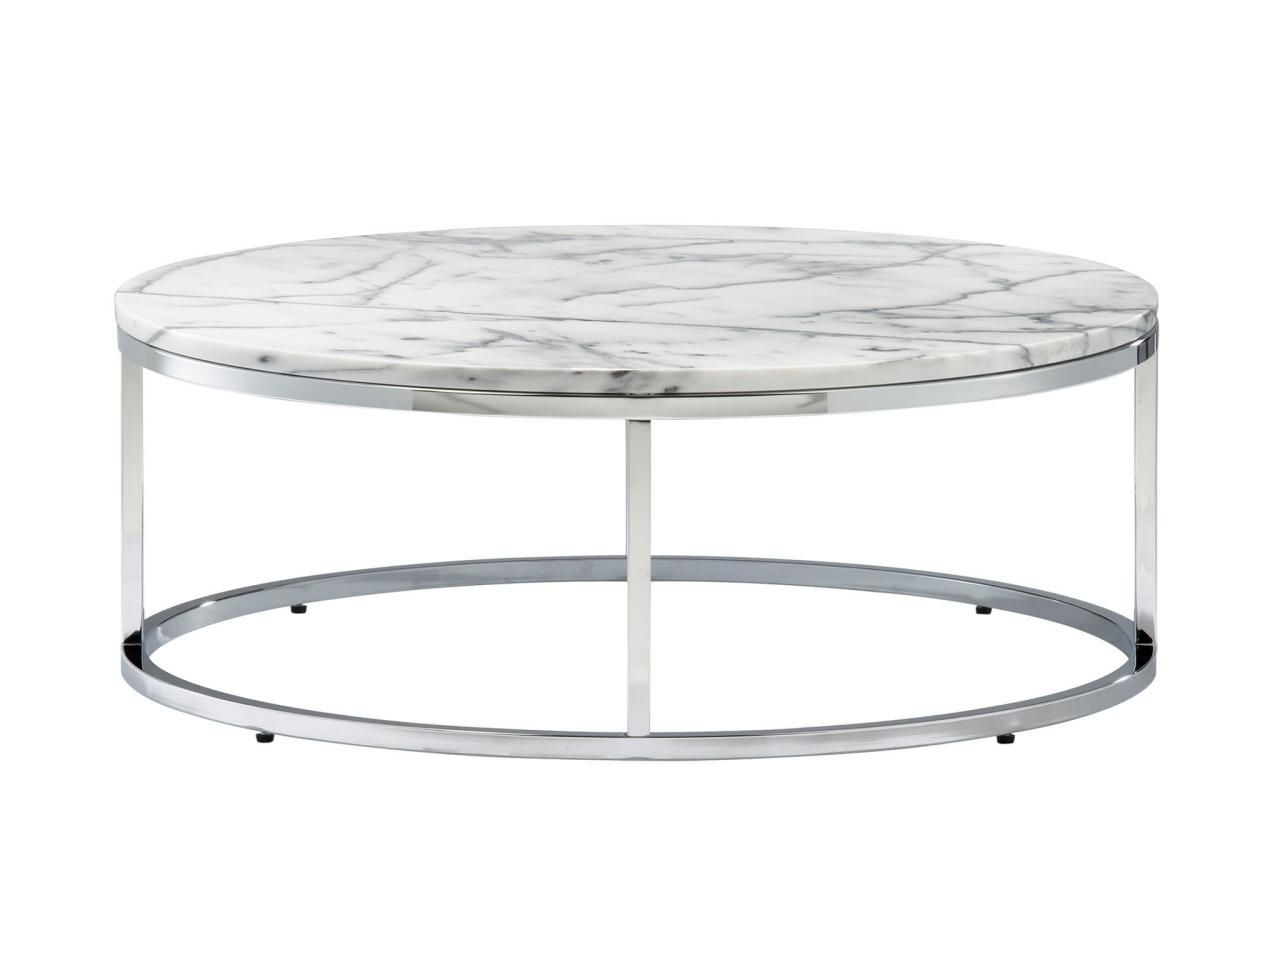 "Smart Round 12 1/4""h X 33"" Diameter Marble And Steel Coffee Table Intended For Most Current Smart Round Marble Top Coffee Tables (View 18 of 20)"